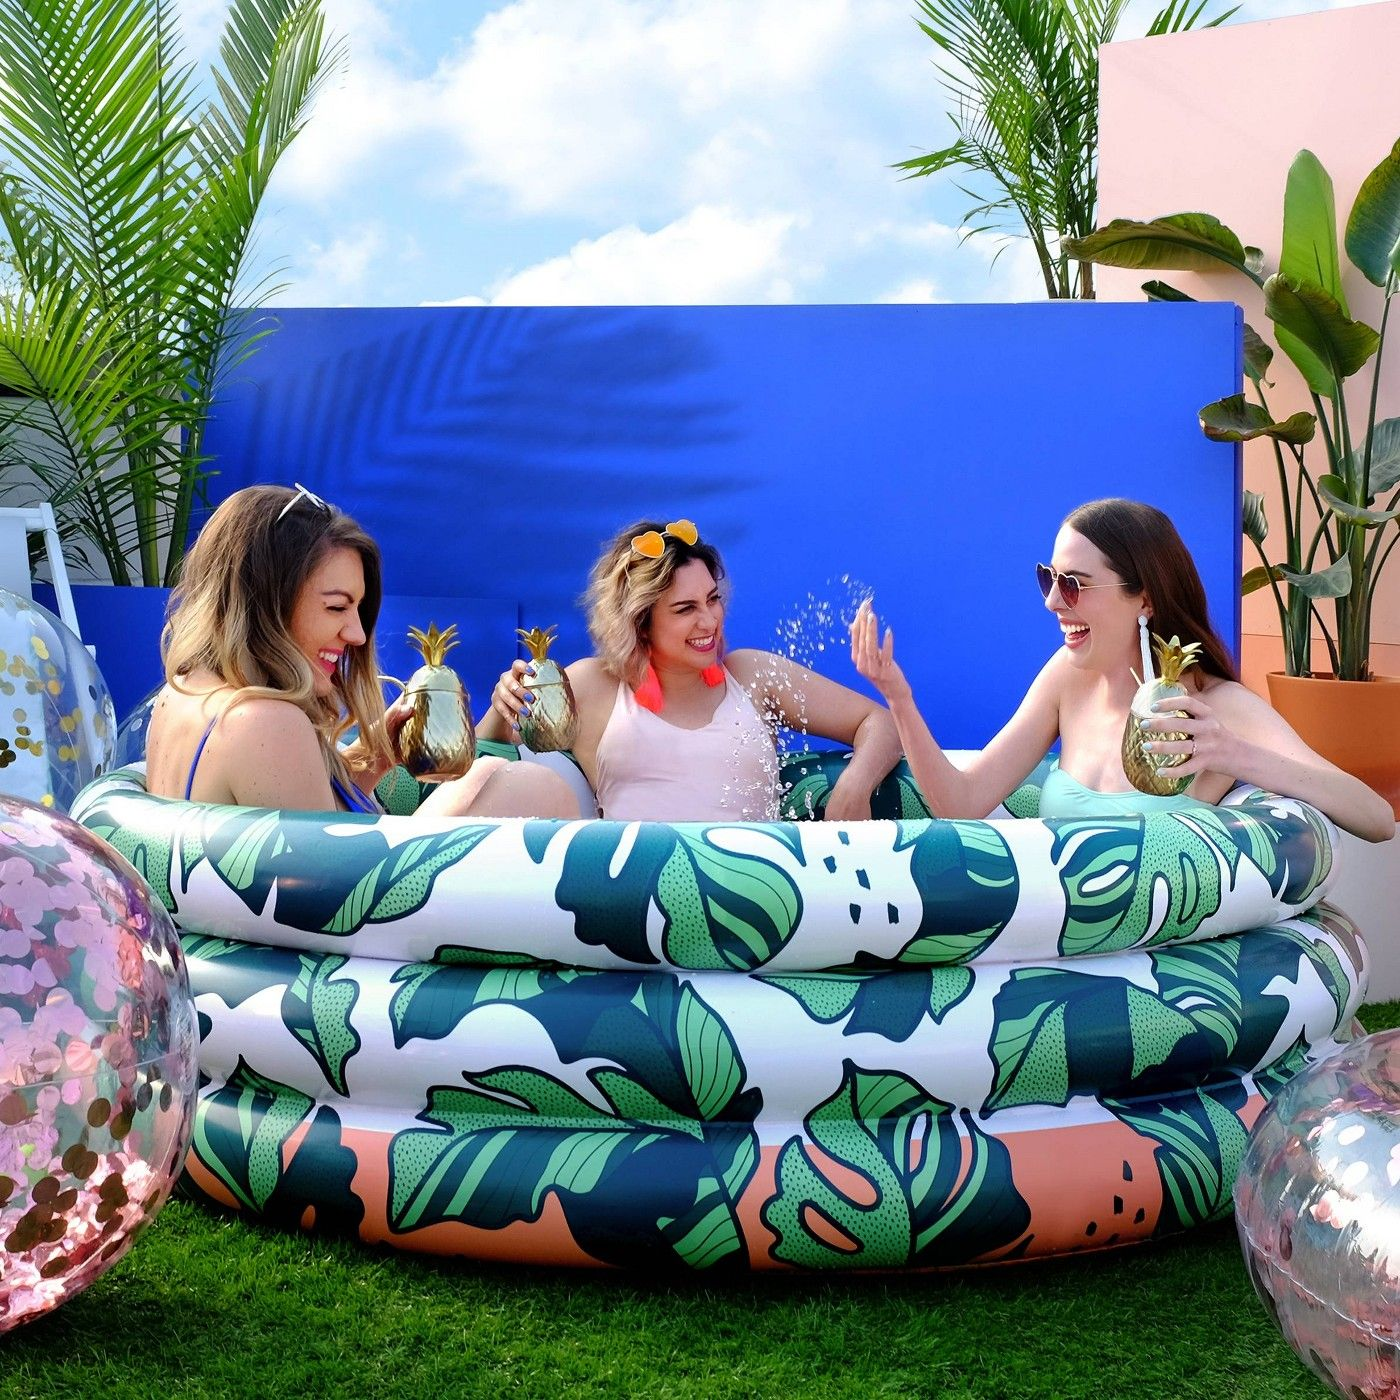 Minnidip Pool That S Banana Leaves Target Blow Up Pool Inflatable Pool Mini Pool